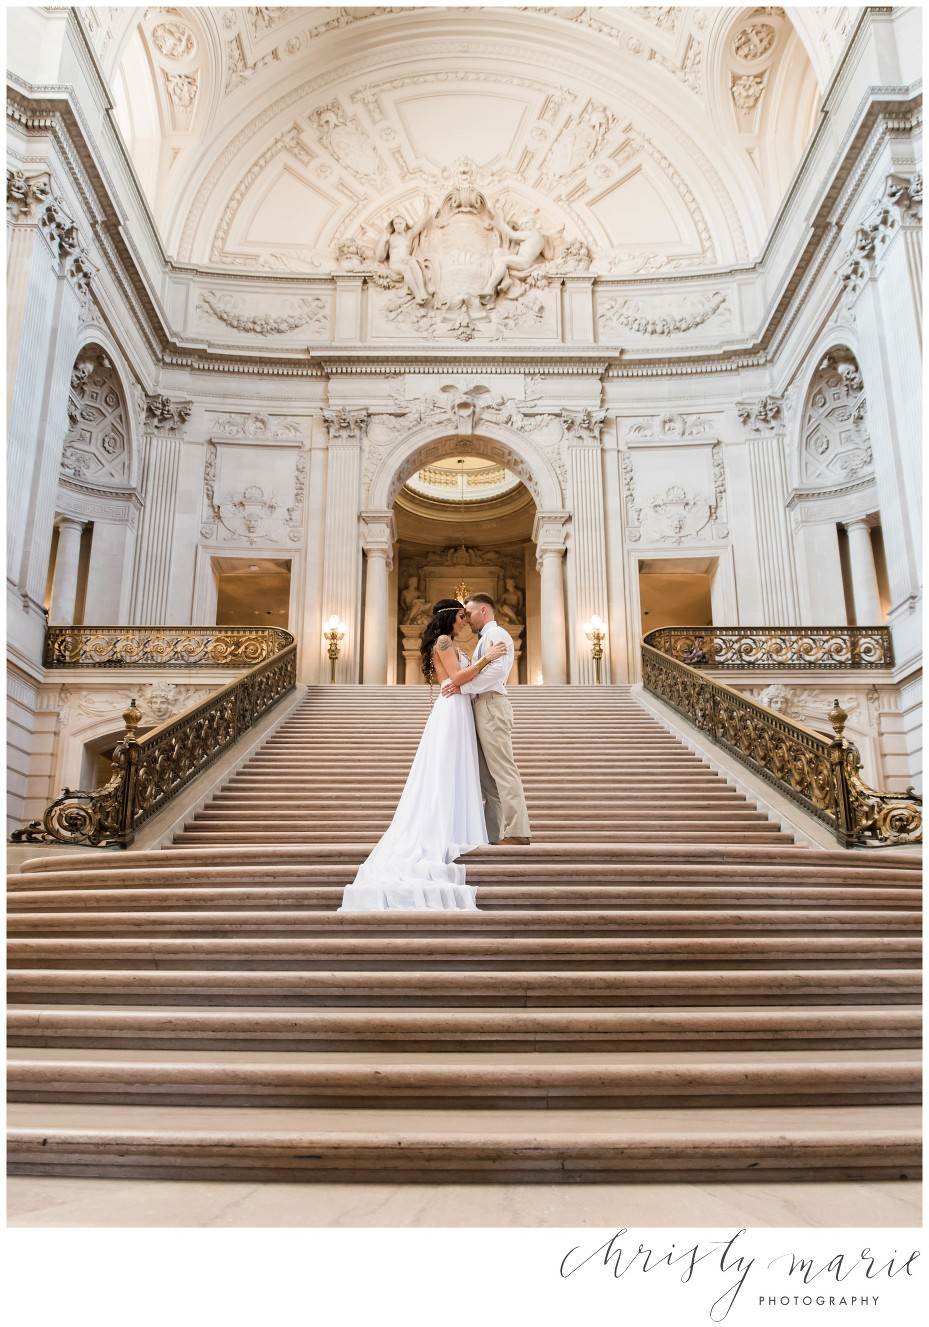 http://christymariephotography.net/wp-content/uploads/2016/08/11-561-post/San-francisco-city-hall-photographer_0013.jpg